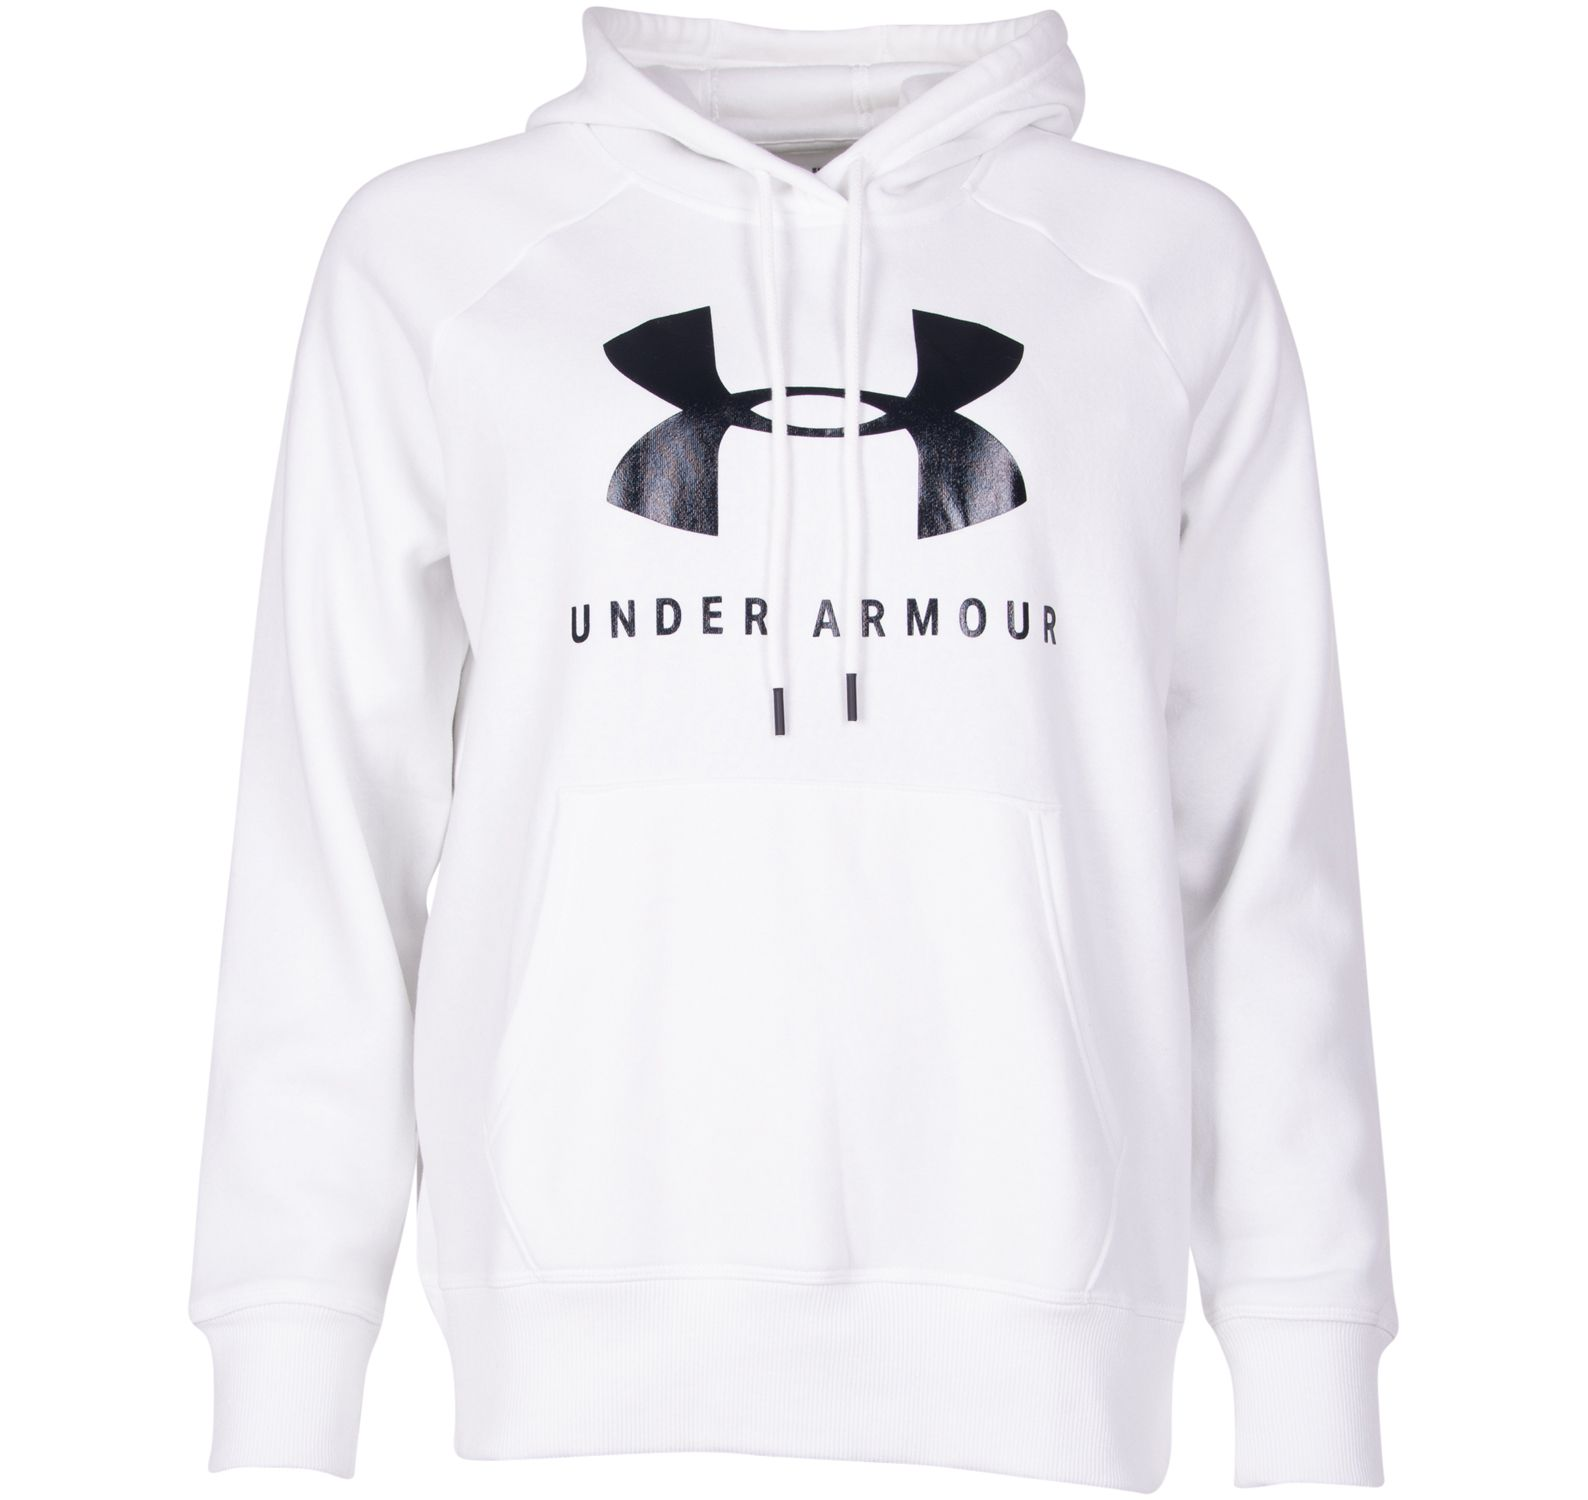 rival fleece sportstyle graphi, white, l, under armour